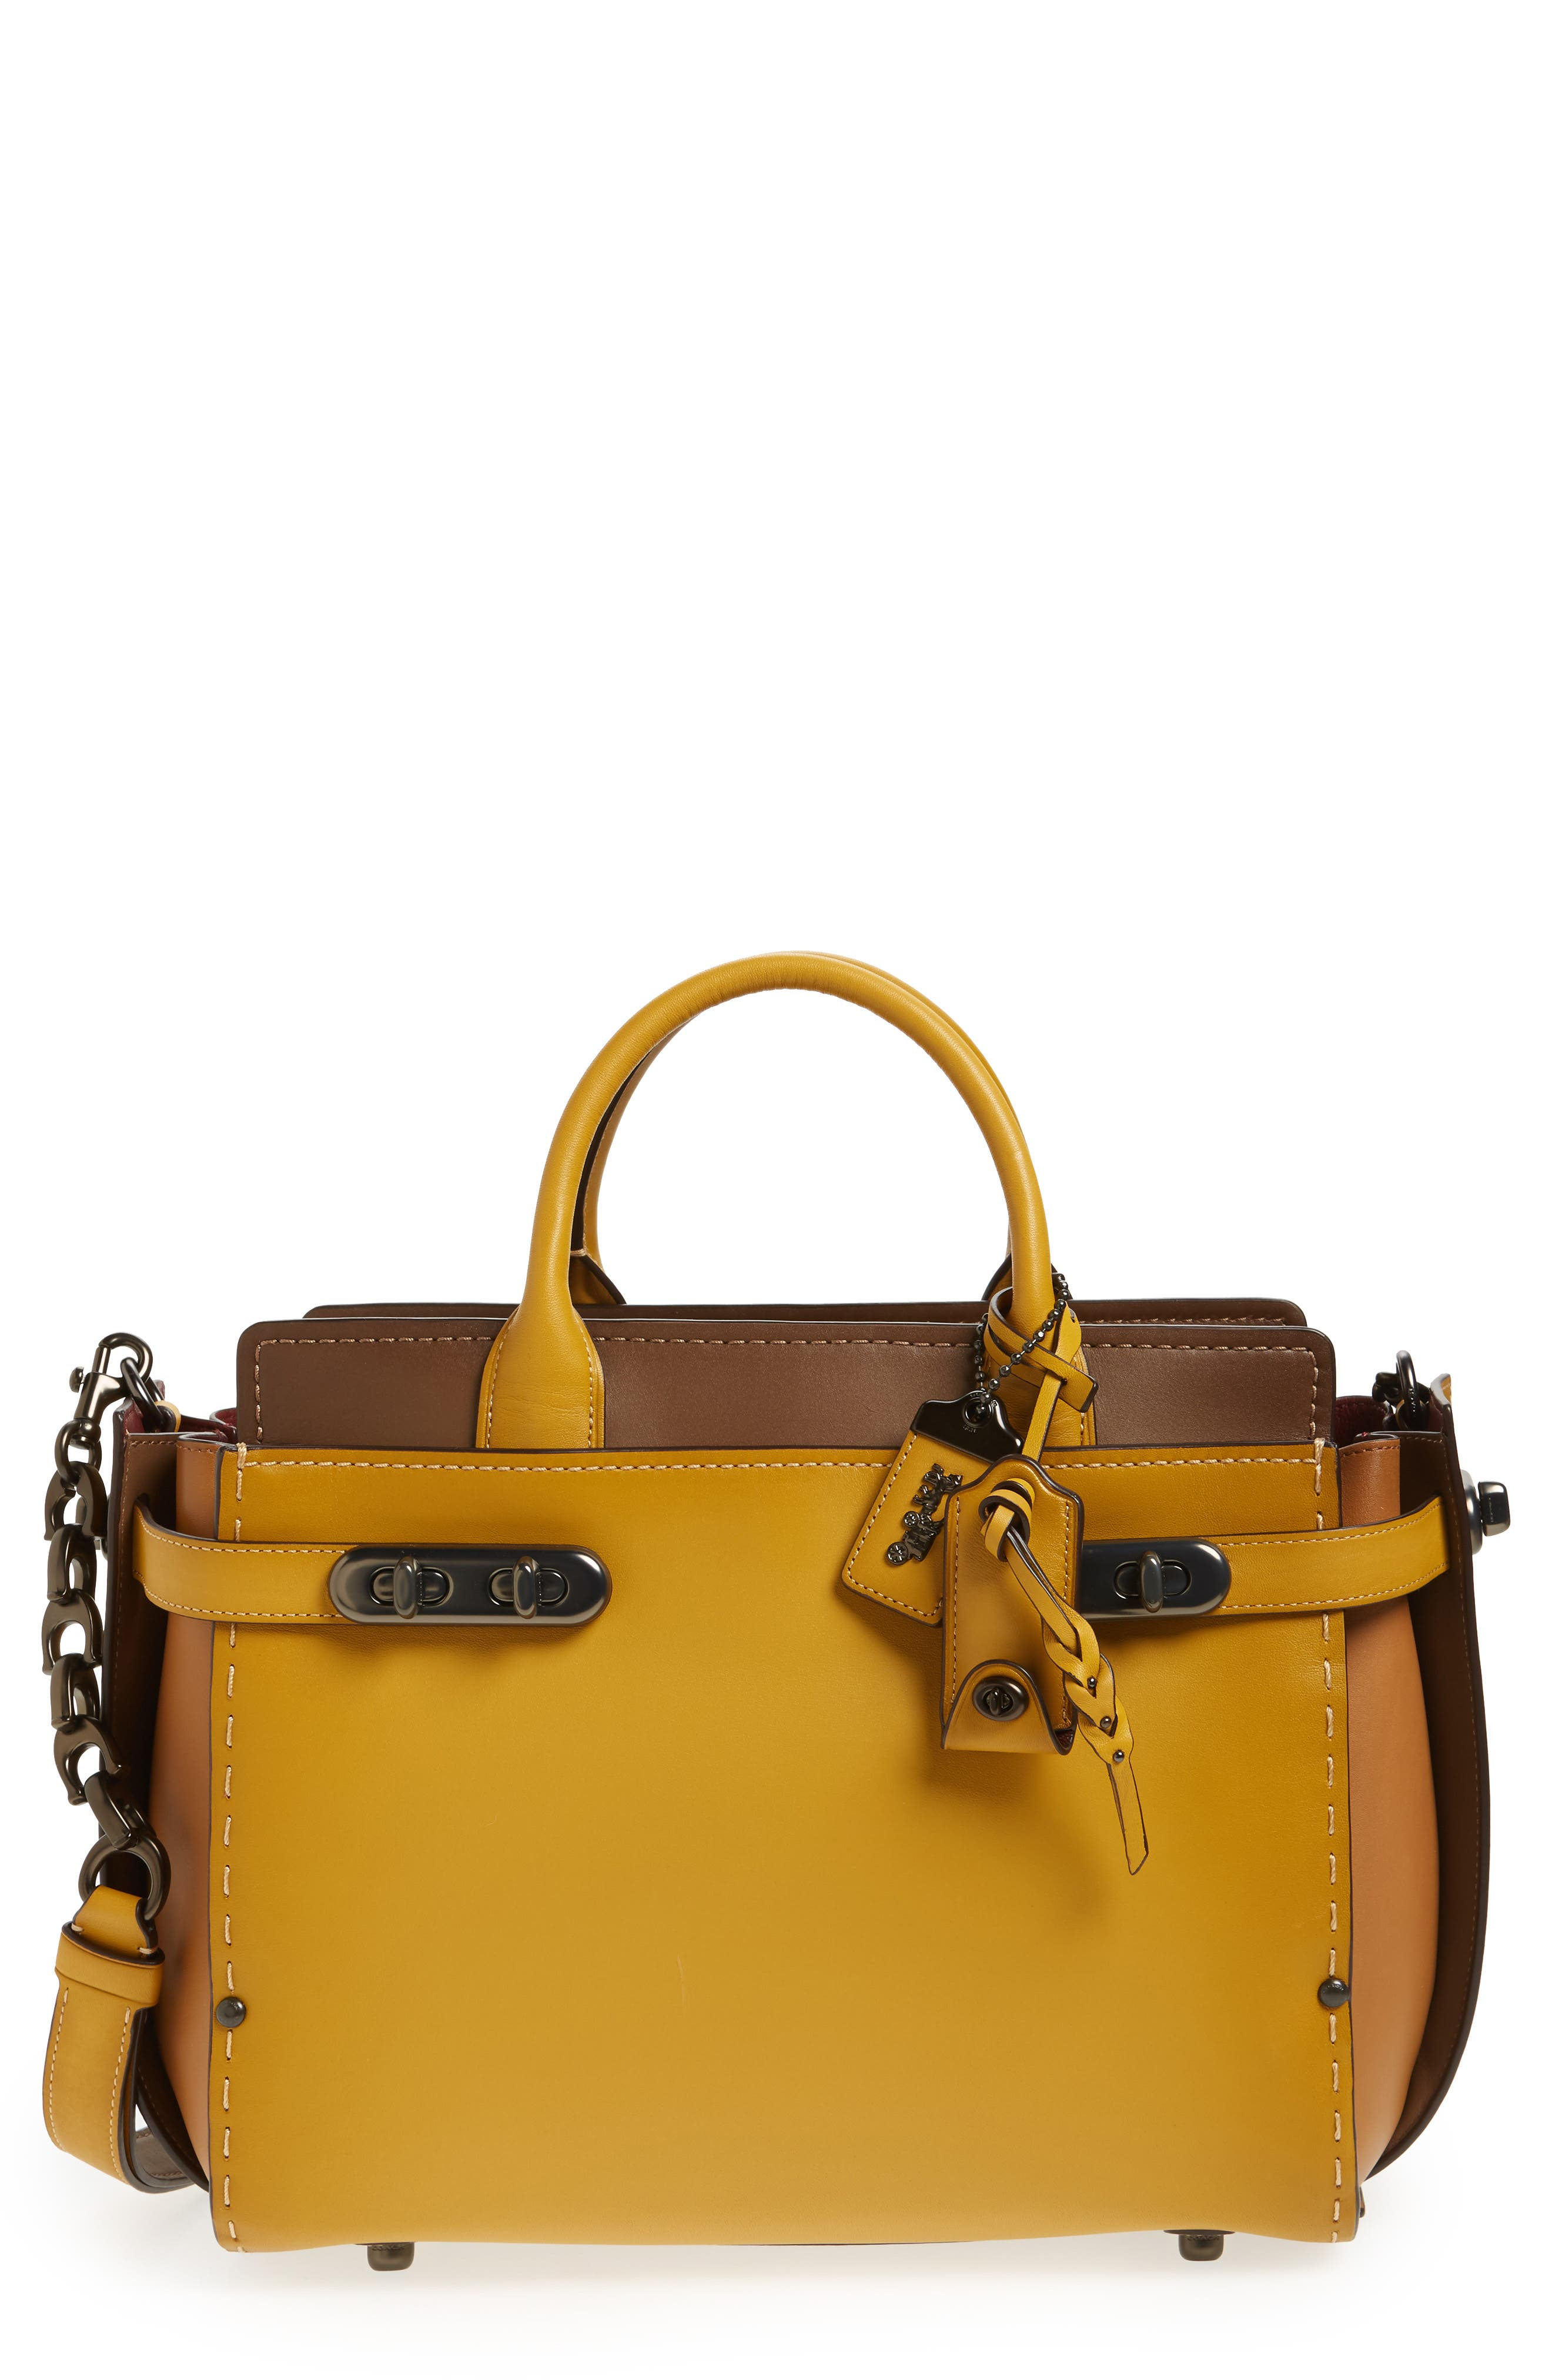 Alternate Image 1 Selected - COACH Double Swagger Leather Satchel